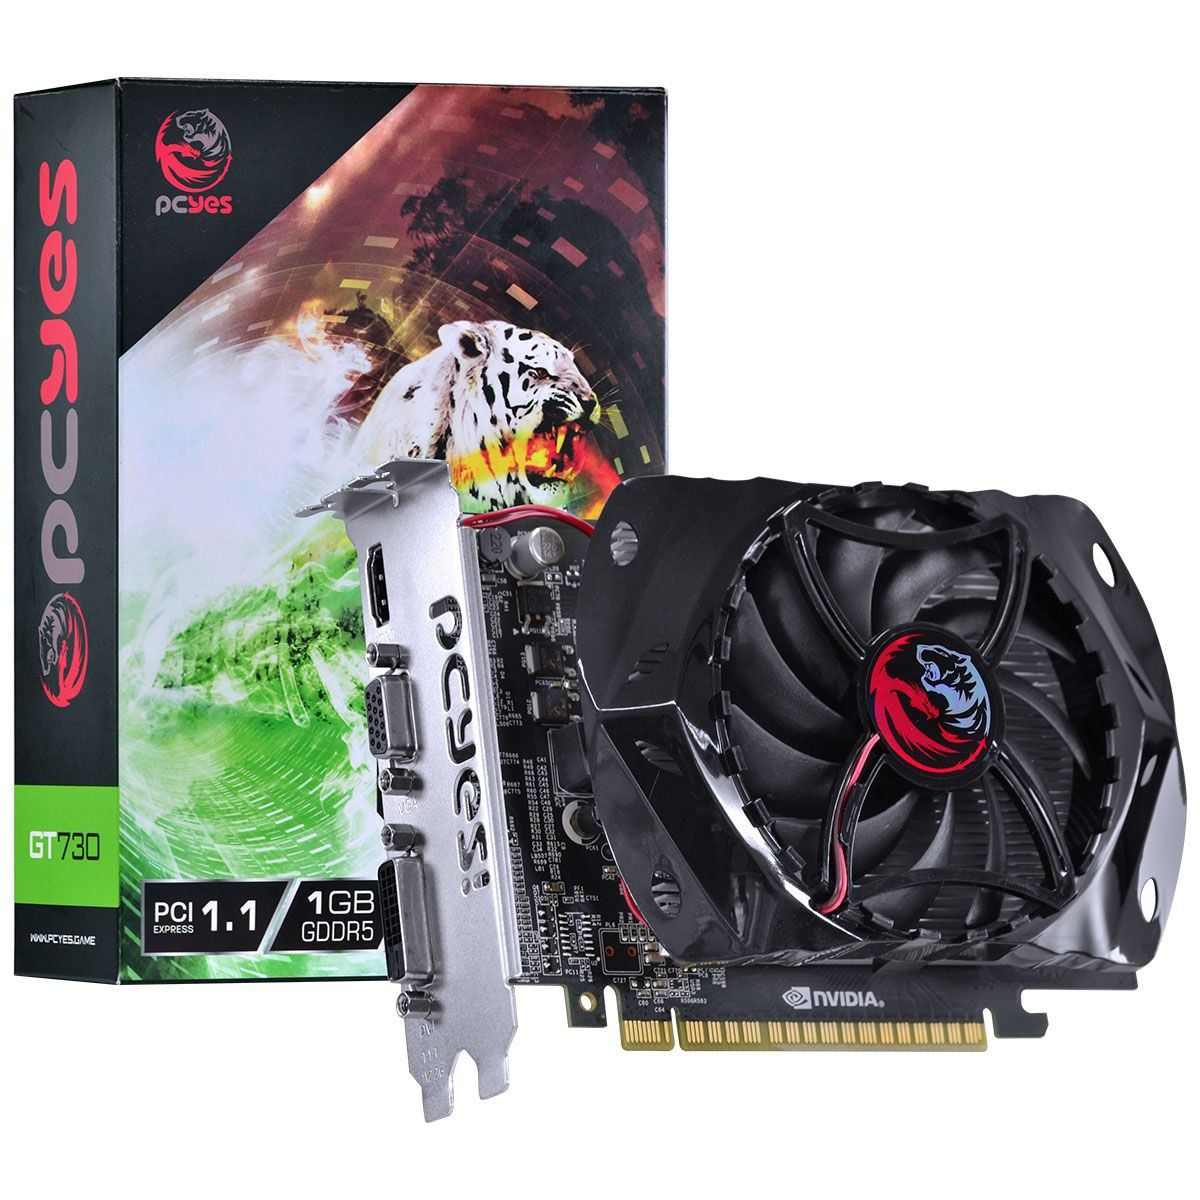 Placa de Vídeo GeForce GT 730 1GB GDDR5 128 Bits Gaming Editon PY730GT12801G5 - Pcyes